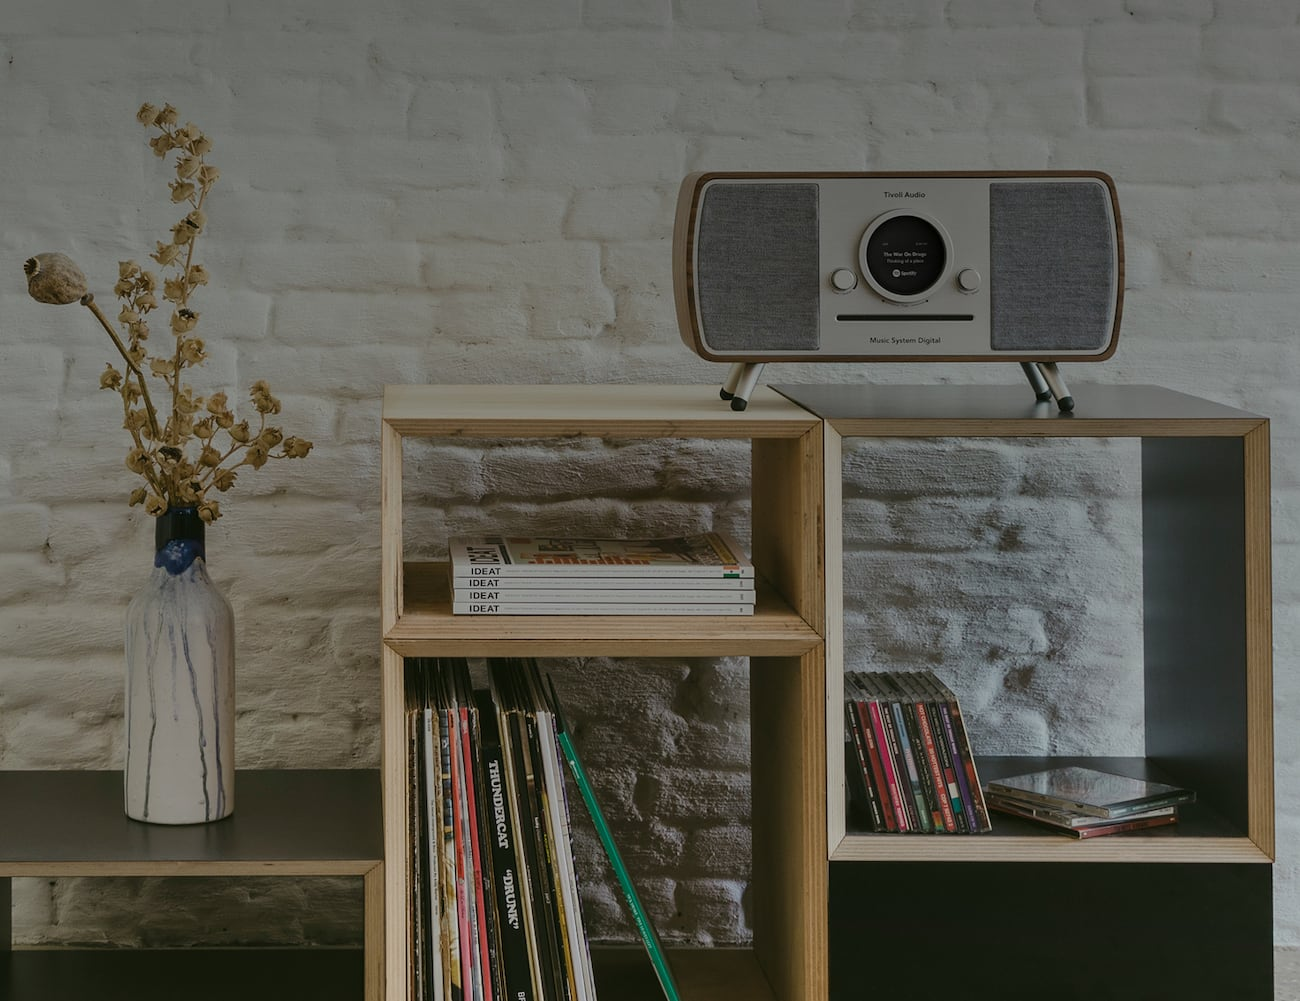 Tivoli Audio Music System Home Smart Hi-Fi System is so much more than a speaker